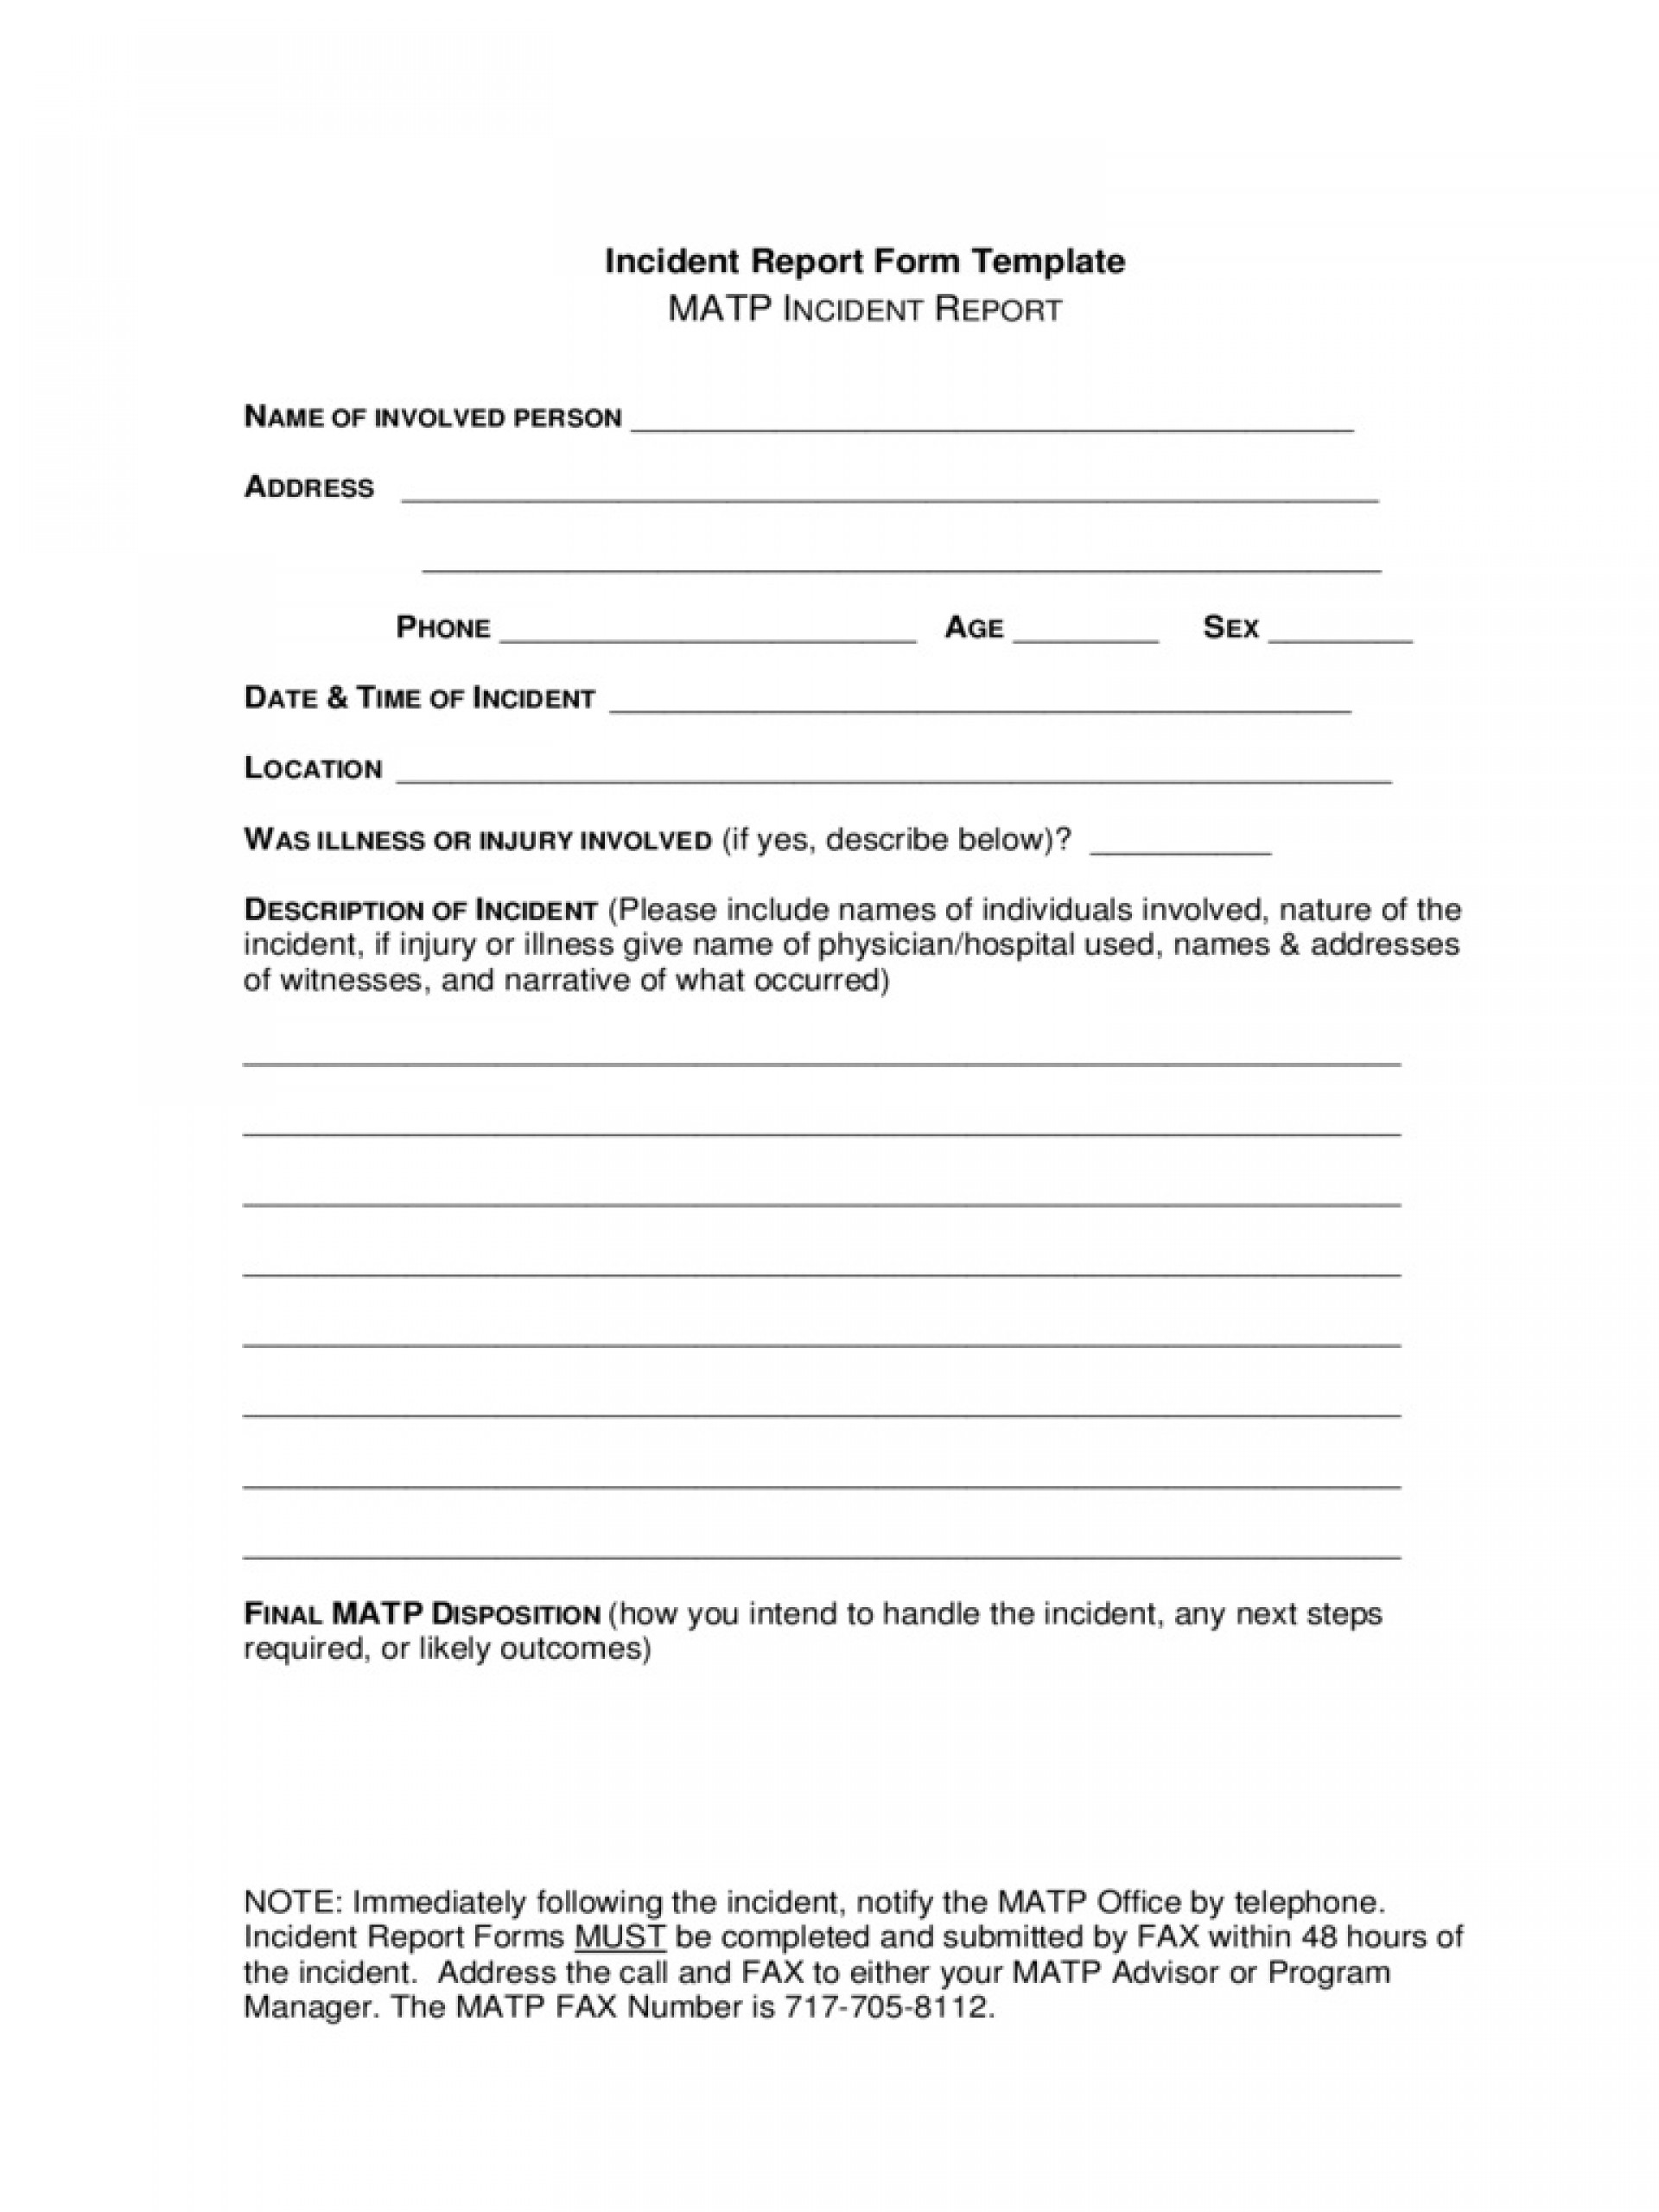 Incident Report Form Template Word New  Downloadable Free1920